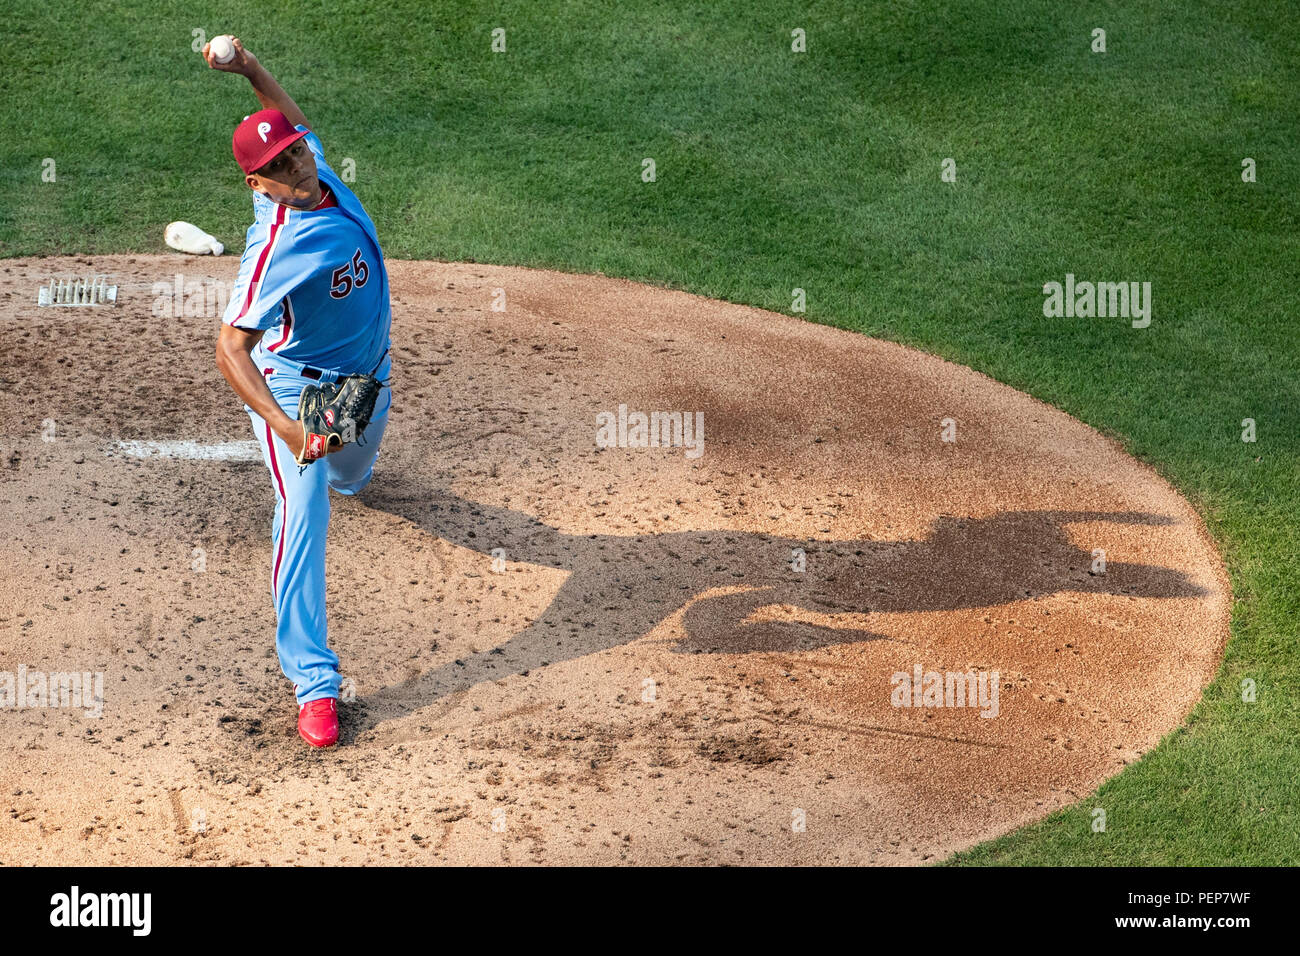 Philadelphia, USA. 16. Aug 2018. August 16, 2018: Philadelphia Phillies Krug Ranger Suarez (55) wirft einen Pitch während der MLB Spiel zwischen den New York Mets und Philadelphia Phillies am Citizens Bank Park in Philadelphia, Pennsylvania. Christopher Szagola/CSM Credit: Cal Sport Media/Alamy leben Nachrichten Stockbild